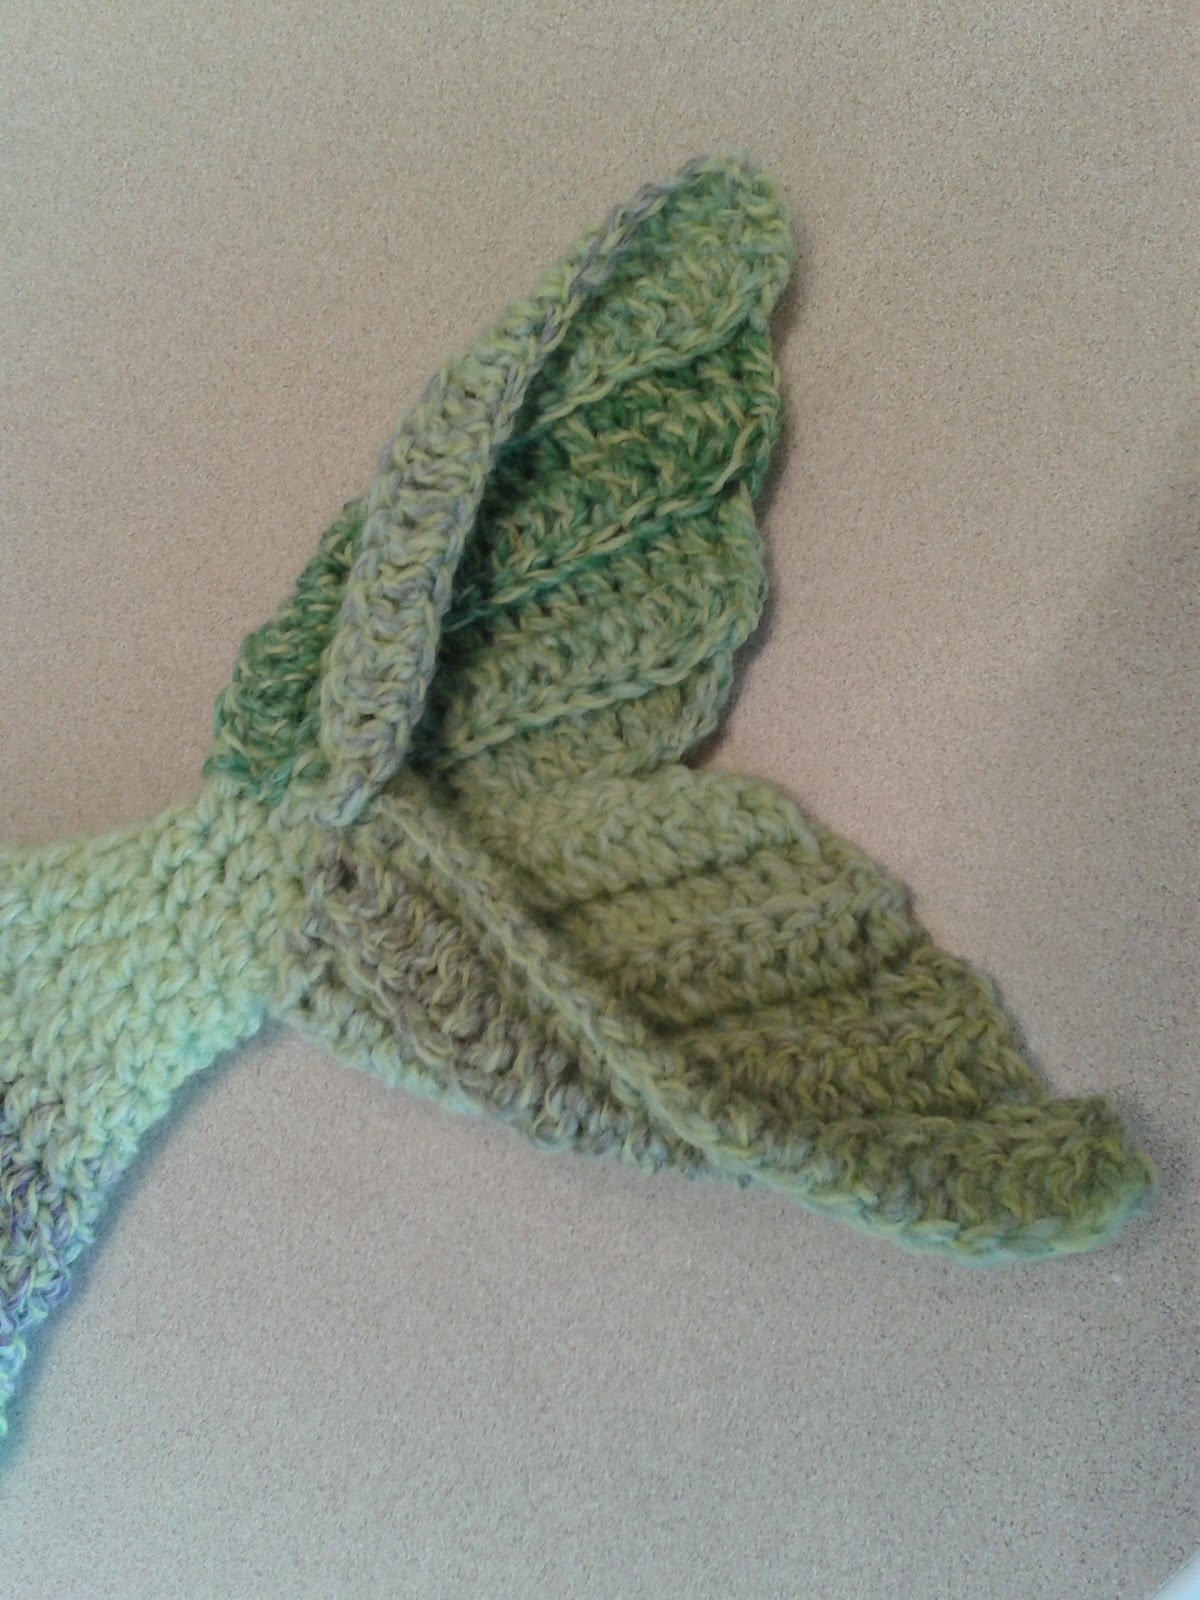 Baby Mermaid Crochet Pattern Interesting Design Inspiration